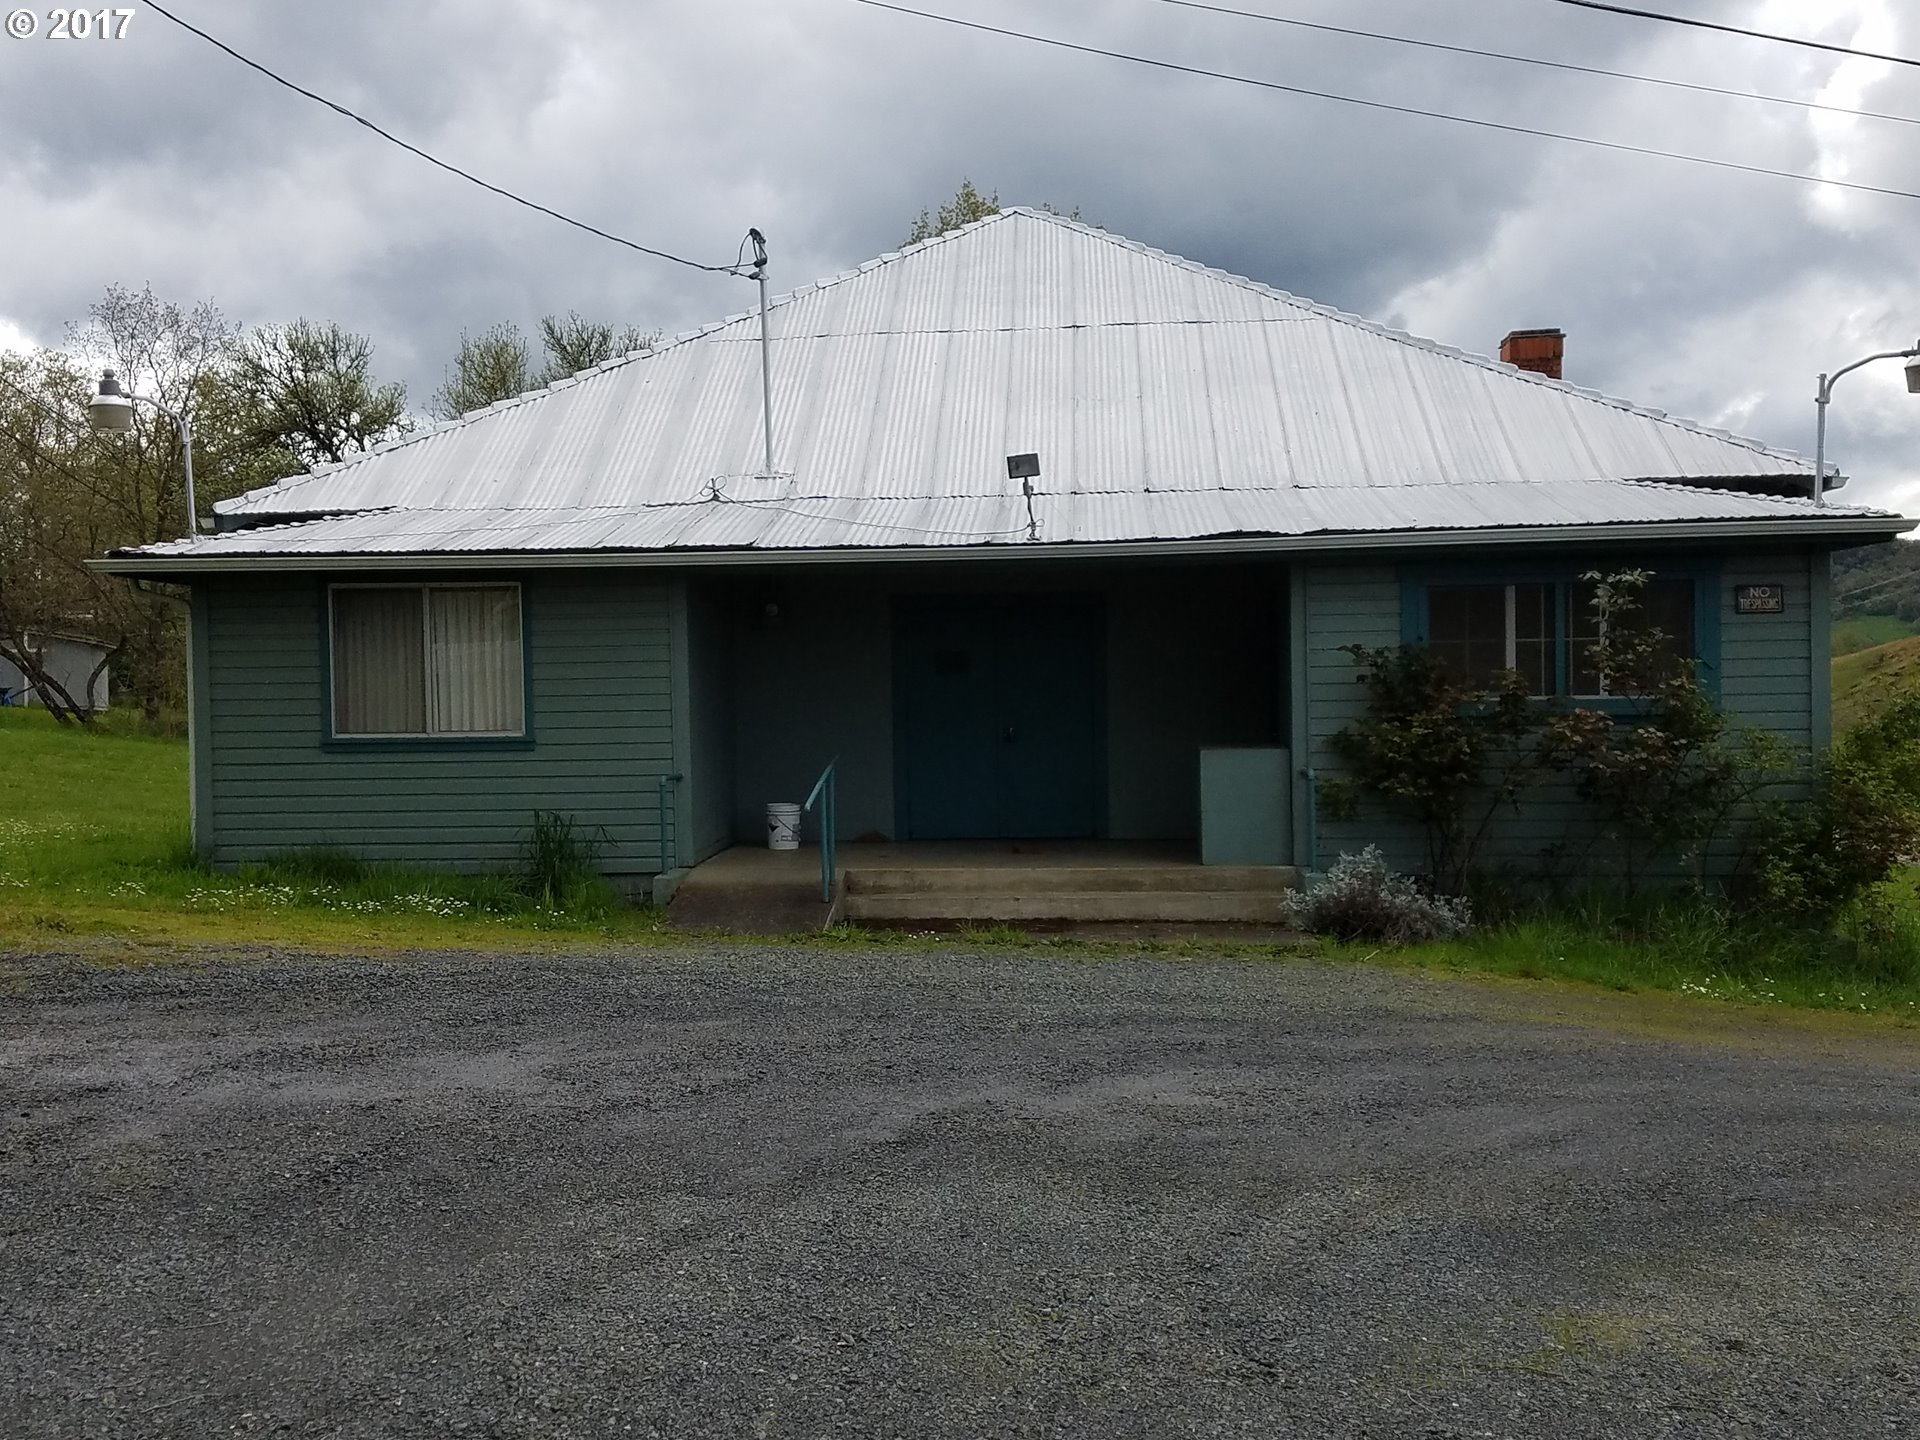 3888 sq. ft 2 bathrooms  House For Sale, Roseburg, OR